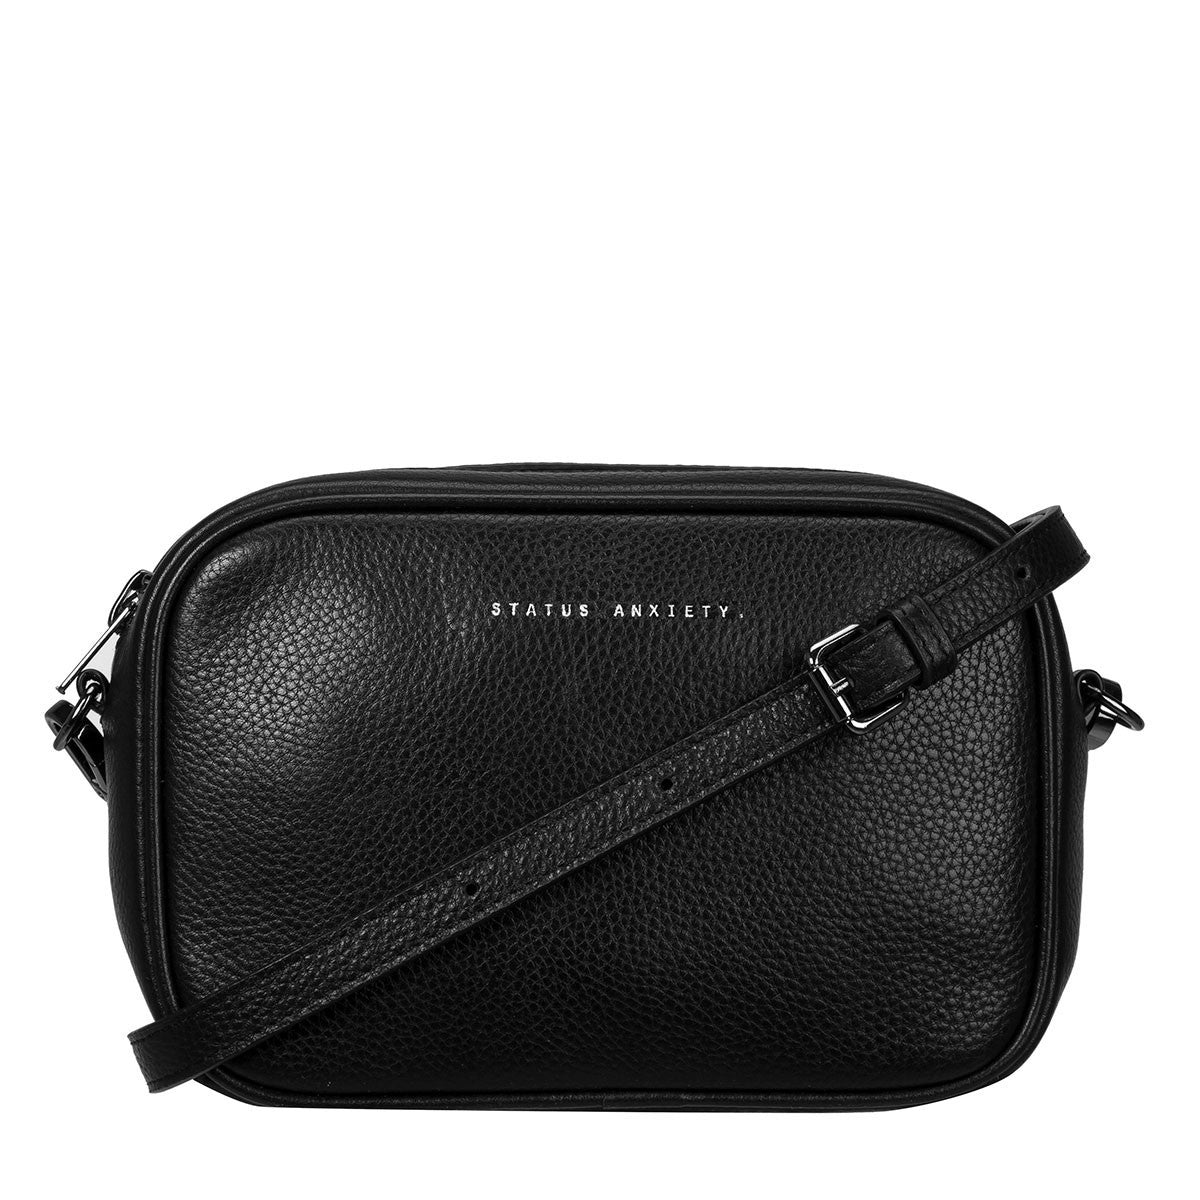 THE PLUNDER BLACK LEATHER BAG FROM STATUS ANXIETY 2